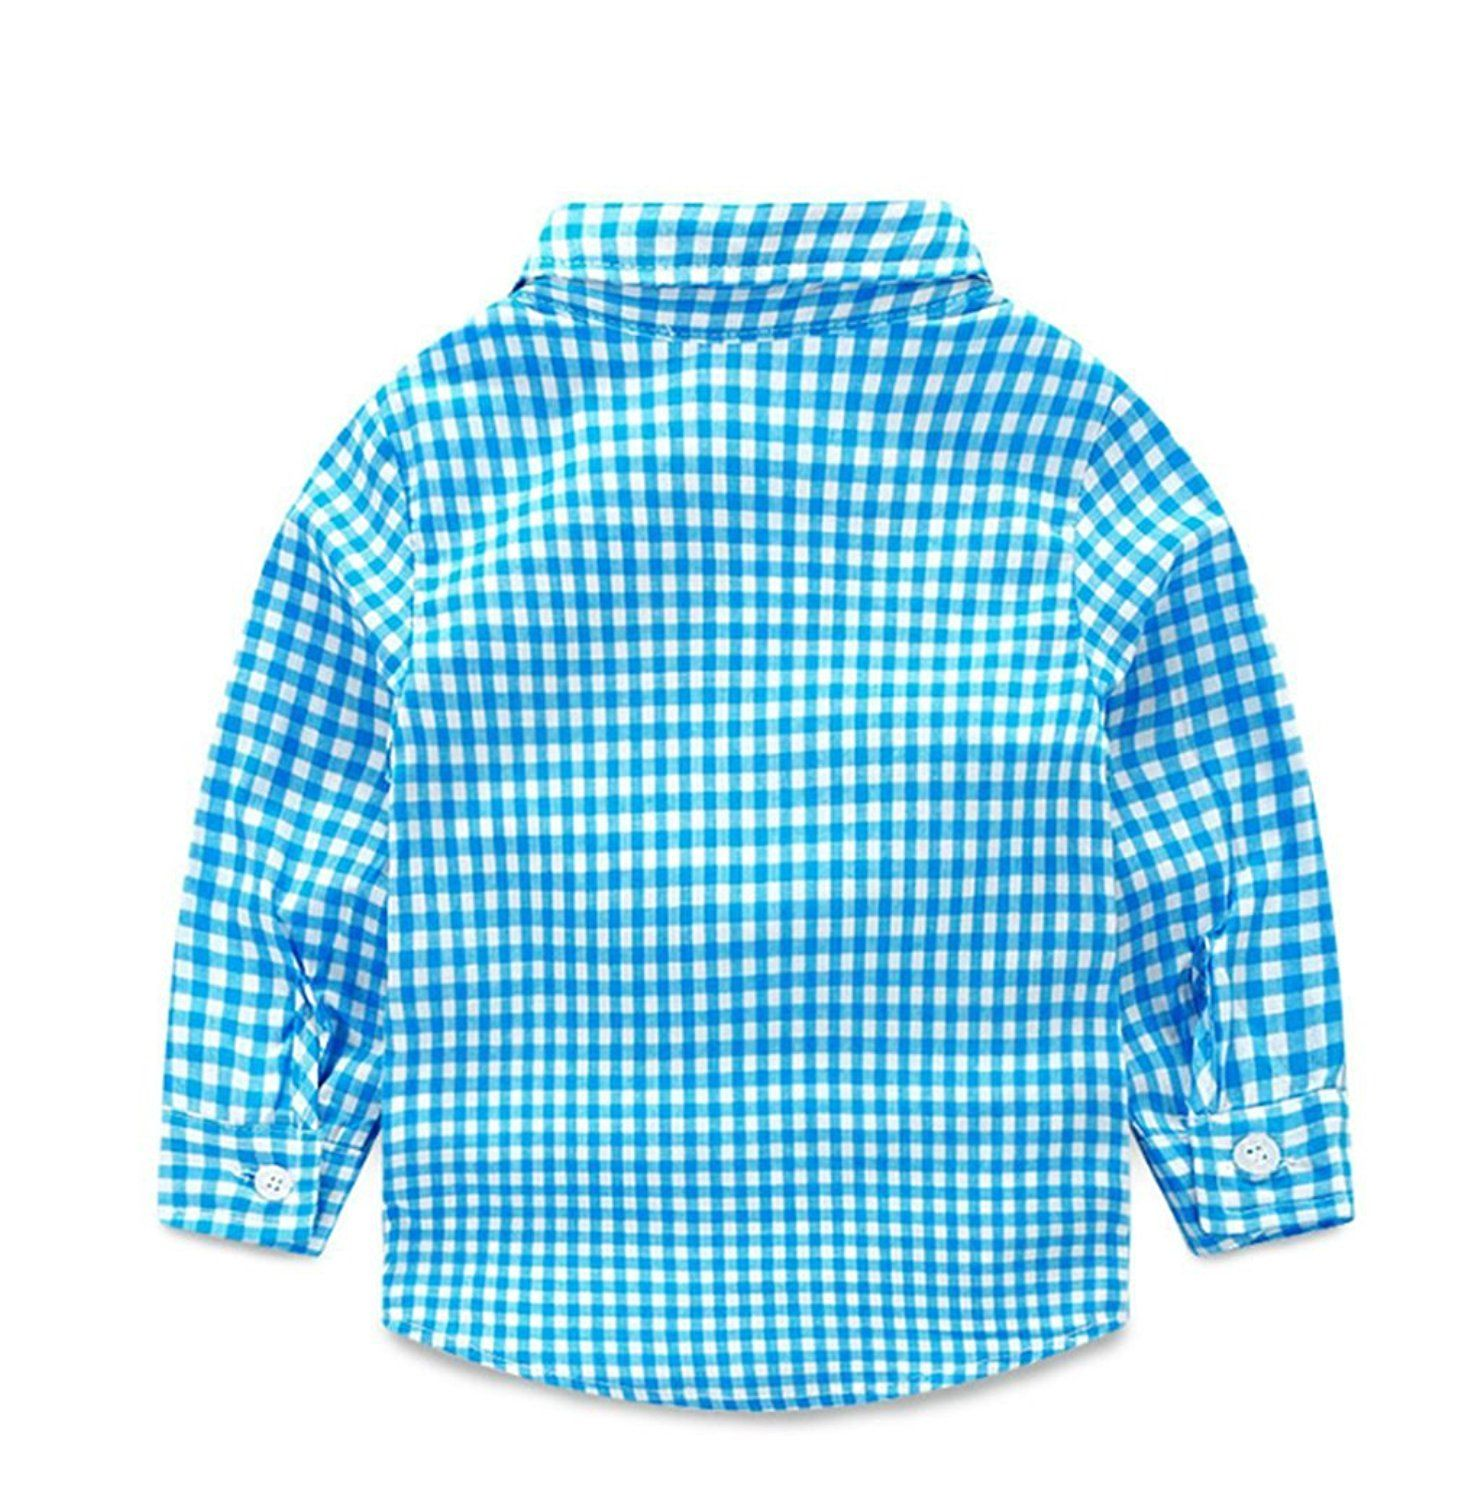 Flannel shirt for baby boy  Baby Boys Gentleman Long Sleeve Plaid Shirt and Suspender Pants Set